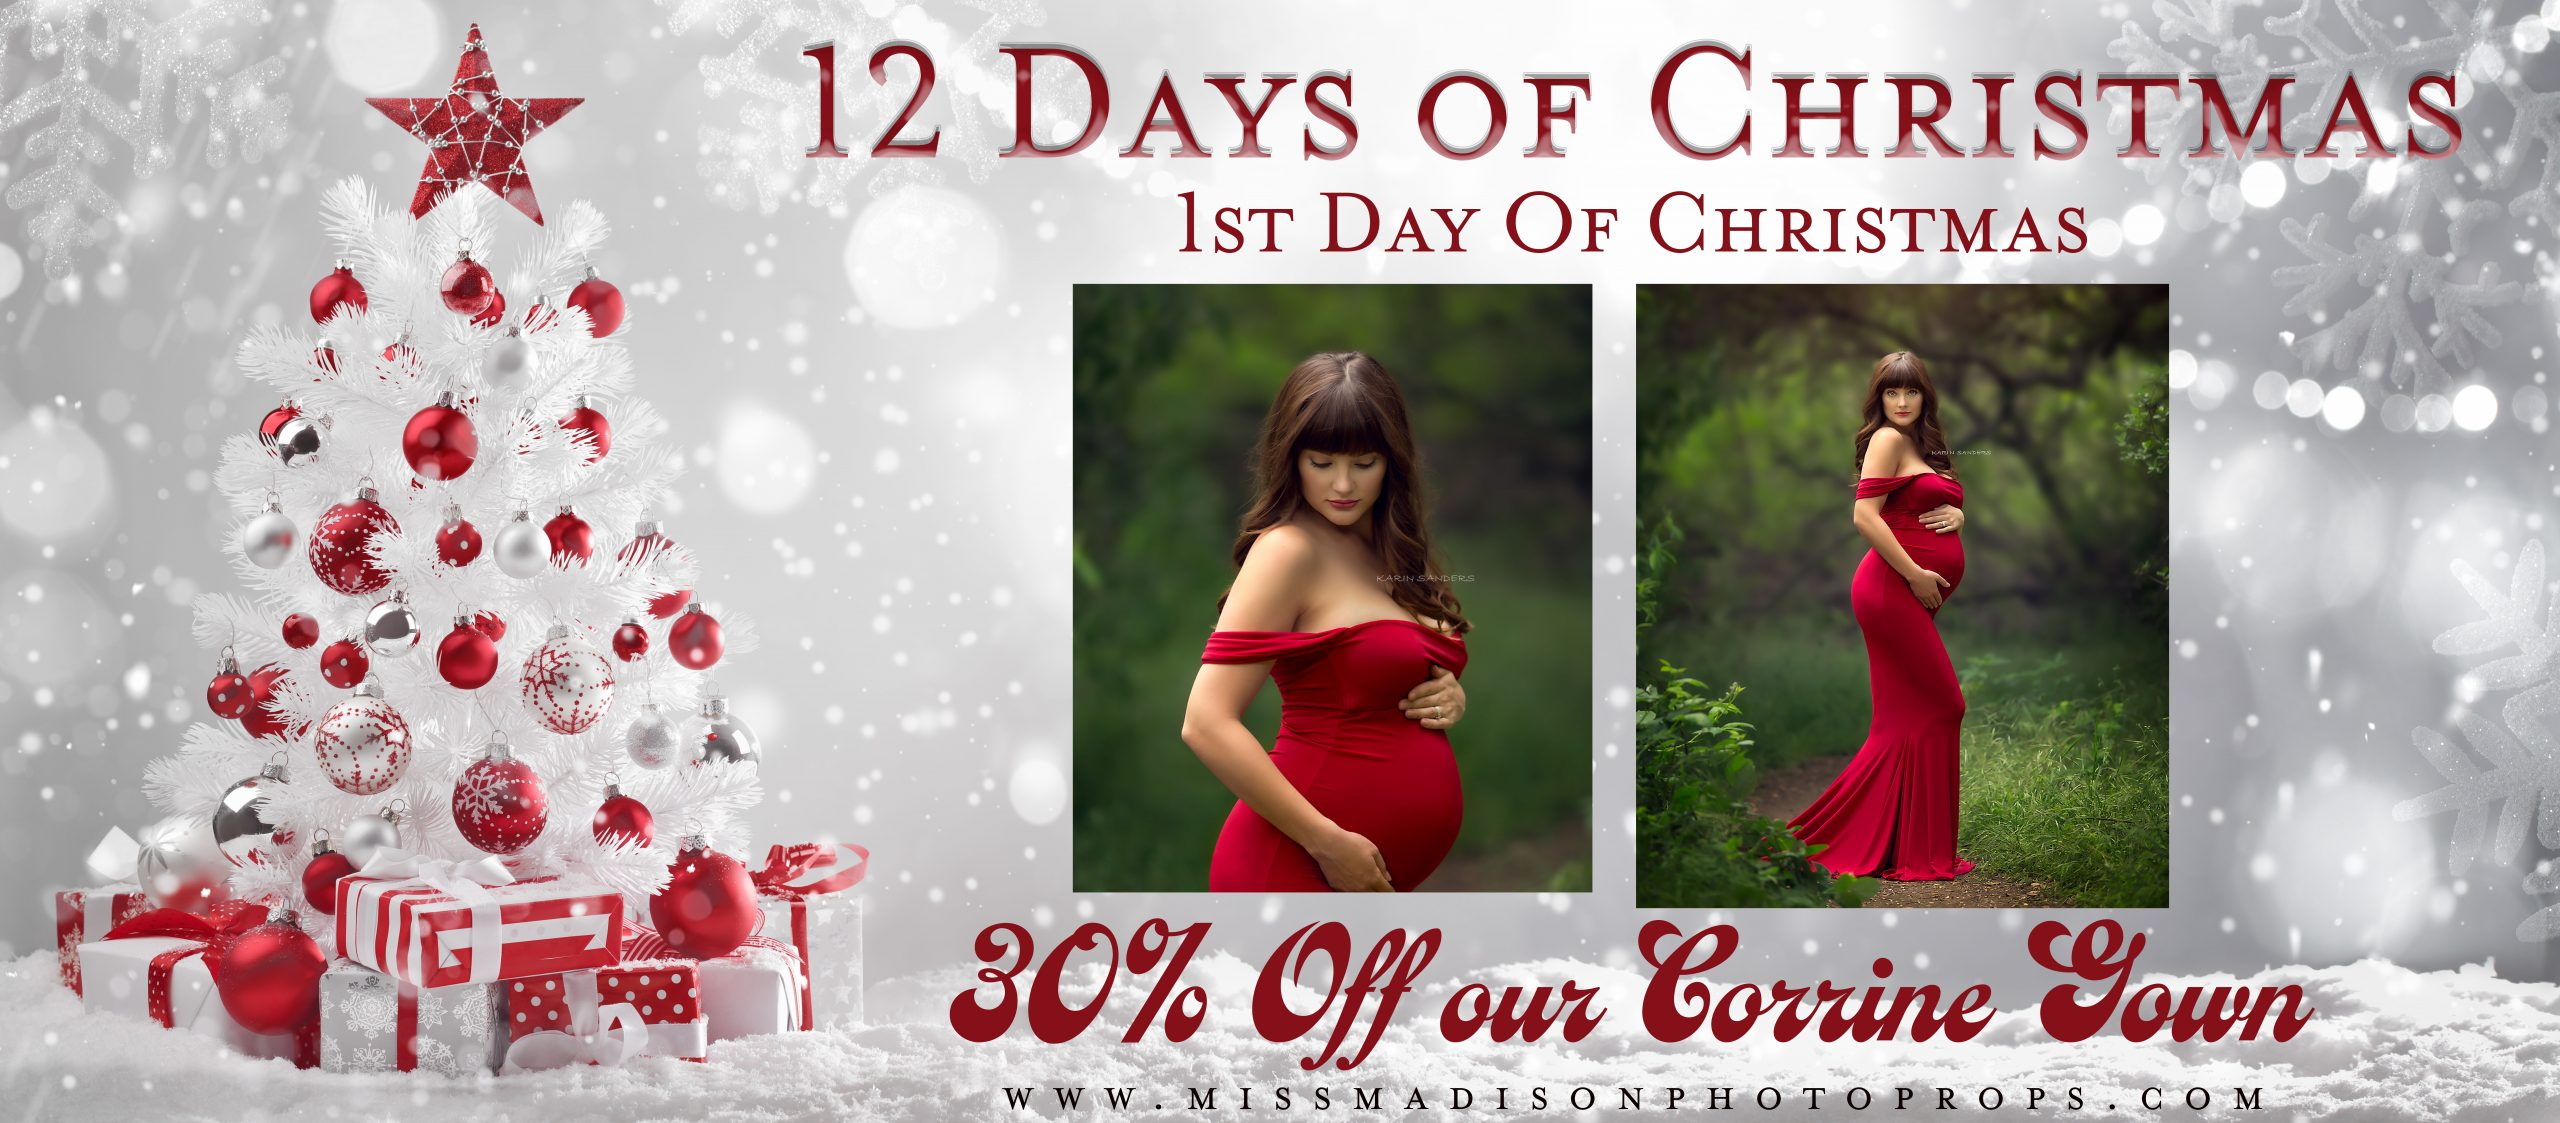 12 days of christmas, maternity gown, maternity dress, photography, photoshoot, babyshower dress, bridesmaid dress, maternity dresses